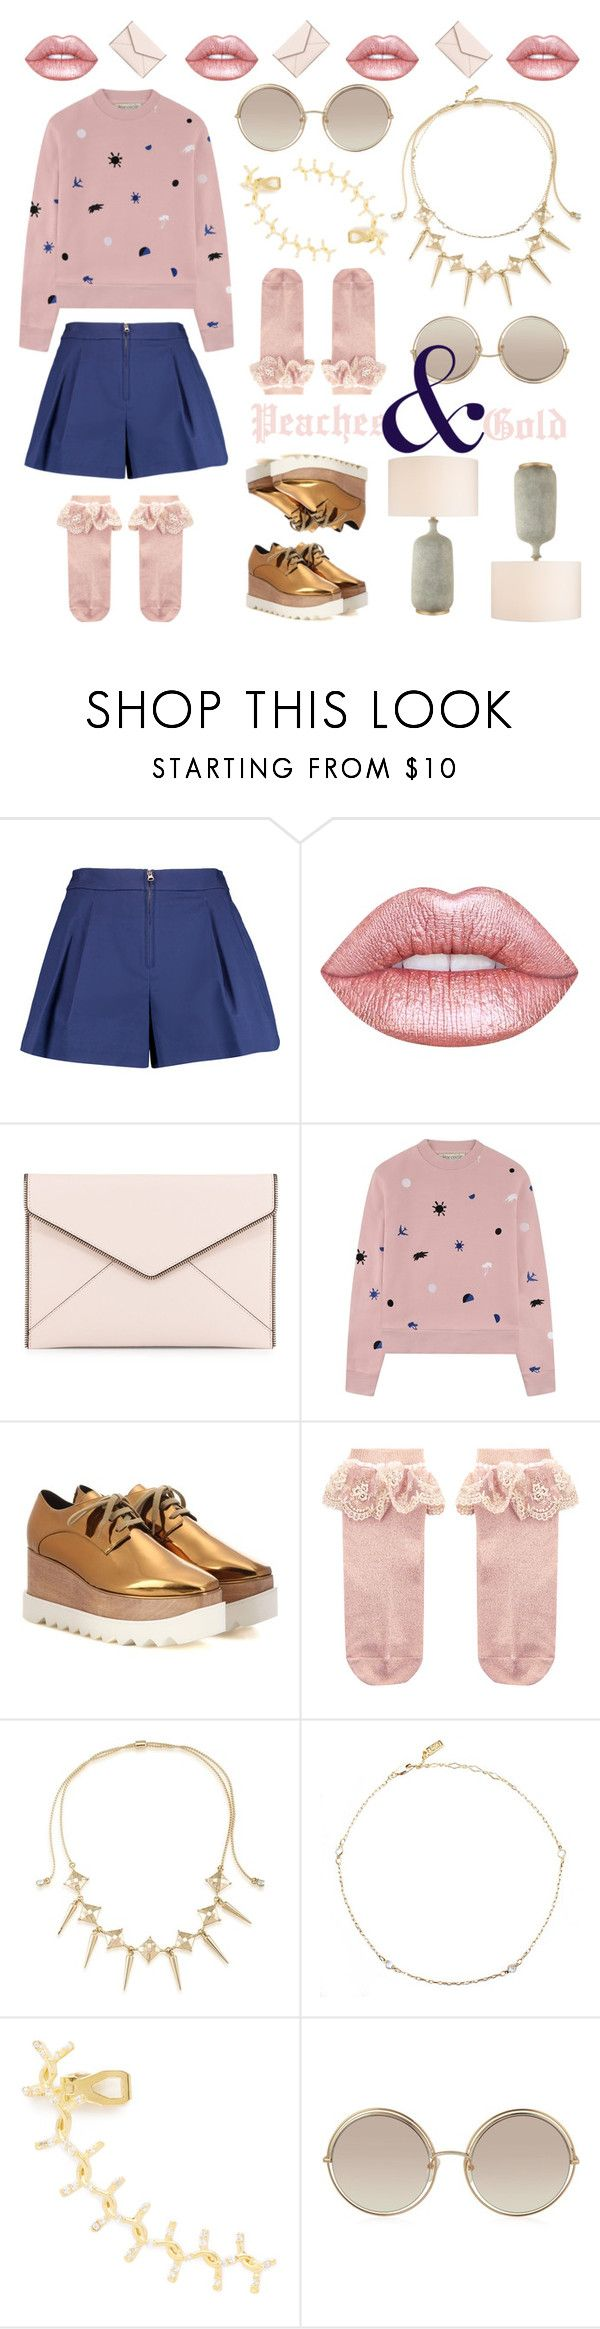 """""""Peaches & Gold"""" by yuniyaro ❤ liked on Polyvore featuring 3.1 Phillip Lim, Lime Crime, Rebecca Minkoff, Être Cécile, STELLA McCARTNEY, Monsoon, ABS by Allen Schwartz, Goddess, Joanna Laura Constantine and Marc Jacobs"""